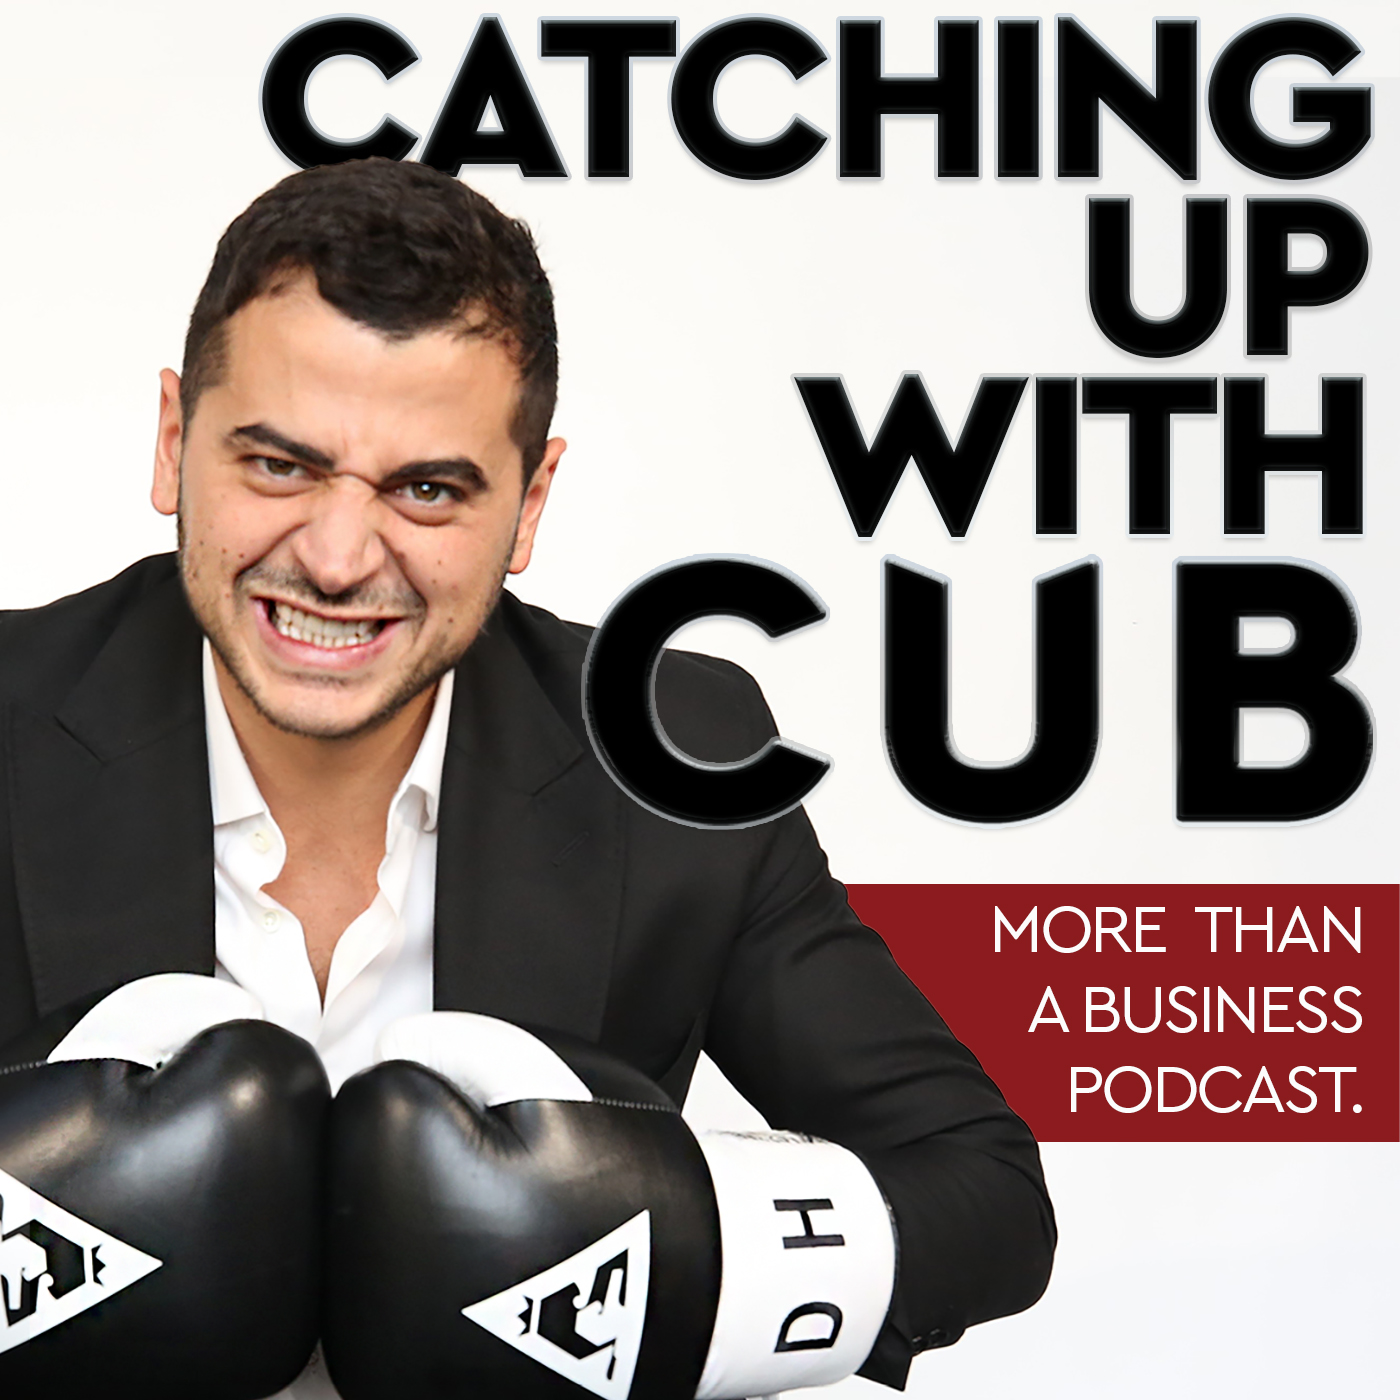 Catching Up With CUB show art